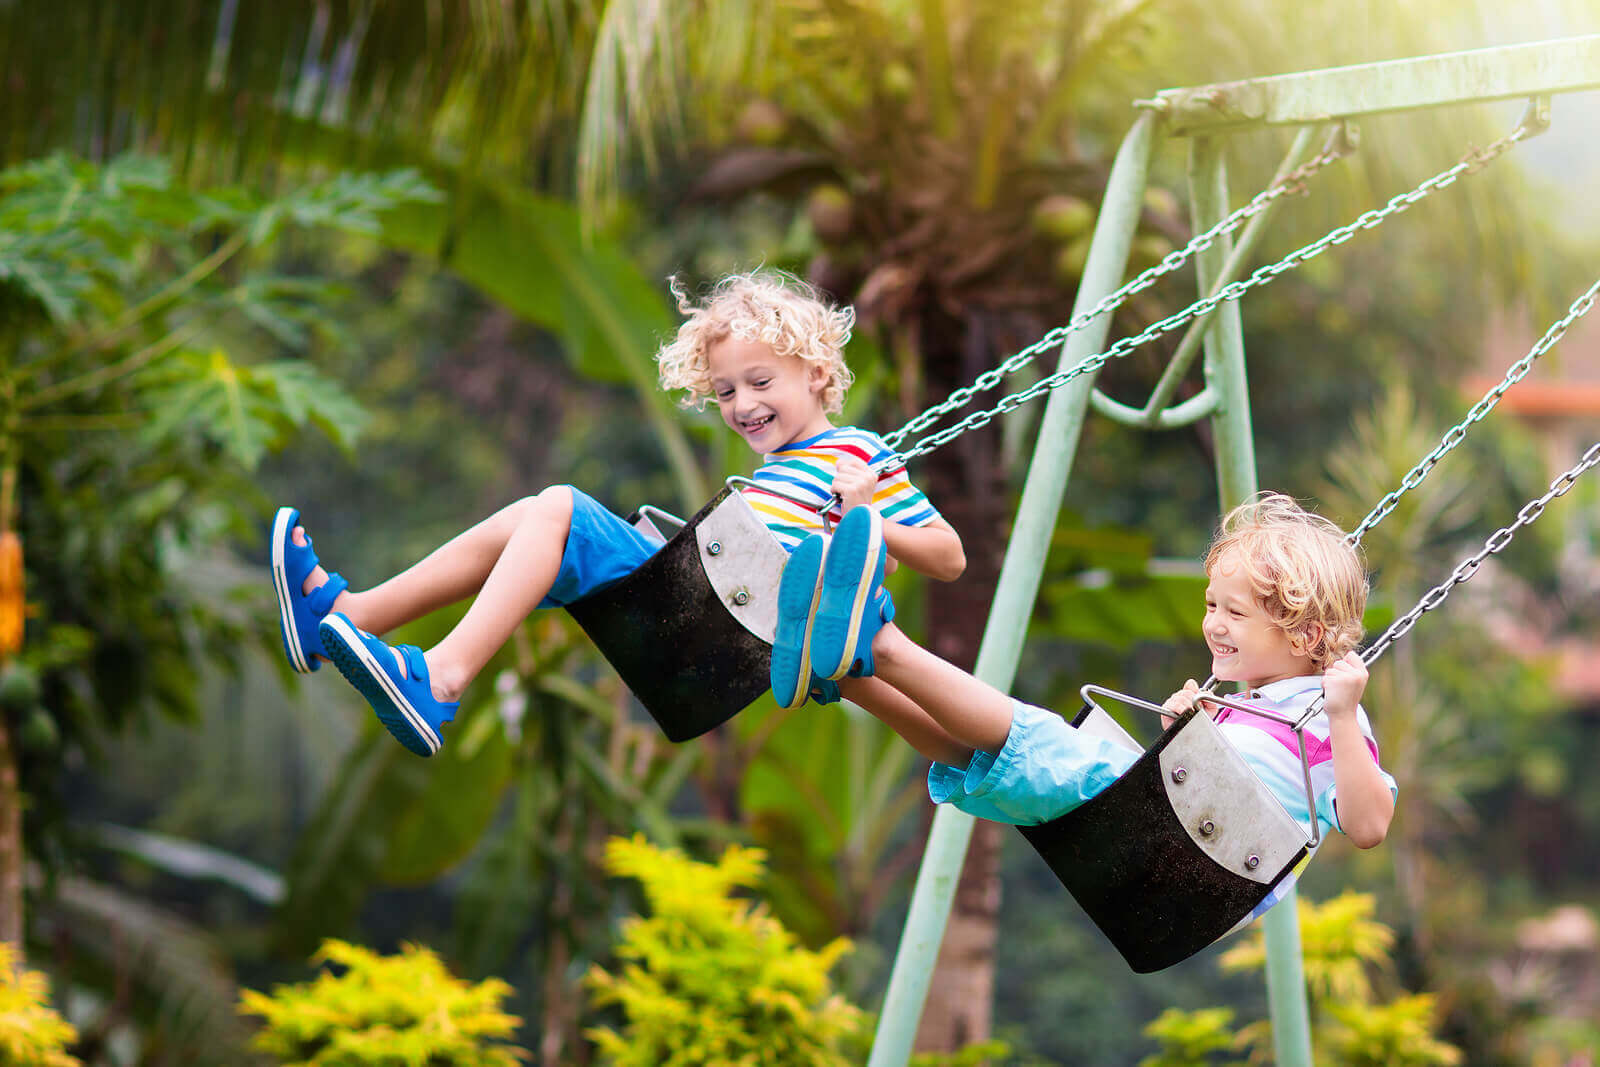 Two brothers swinging on a swingset.